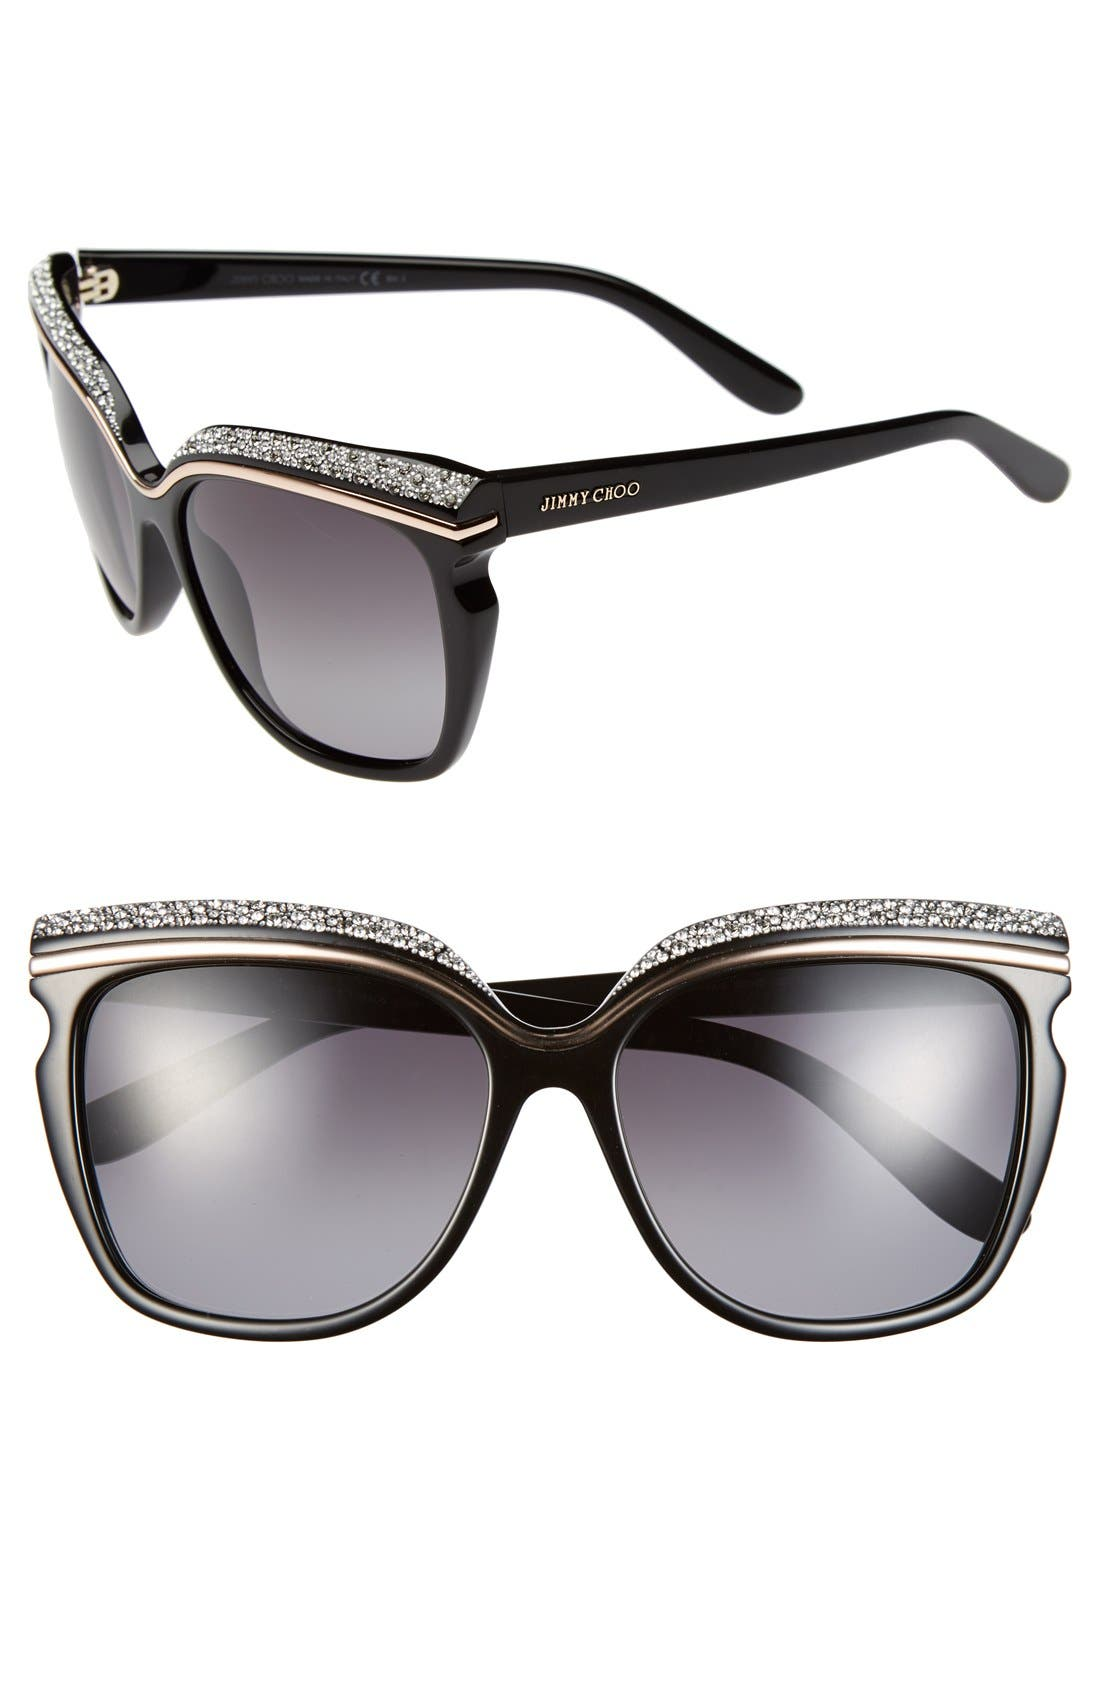 Alternate Image 1 Selected - Jimmy Choo 58mm Retro Sunglasses